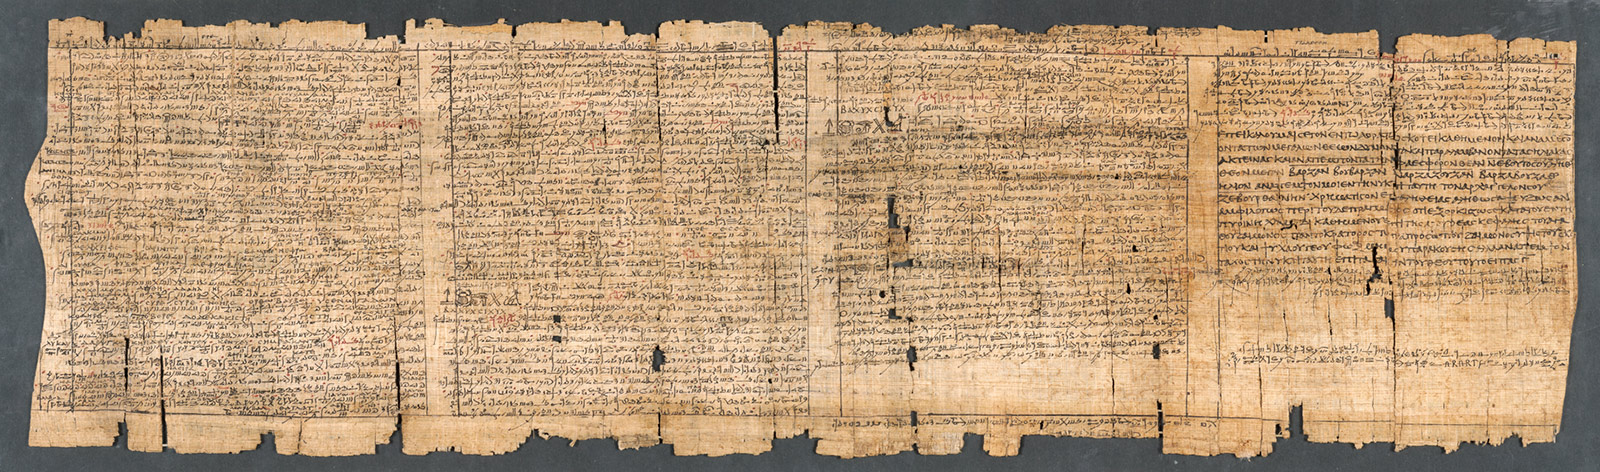 A flat papyrus scroll, yellowed with age and missing some pieces, with many lines of small hand-painted letters